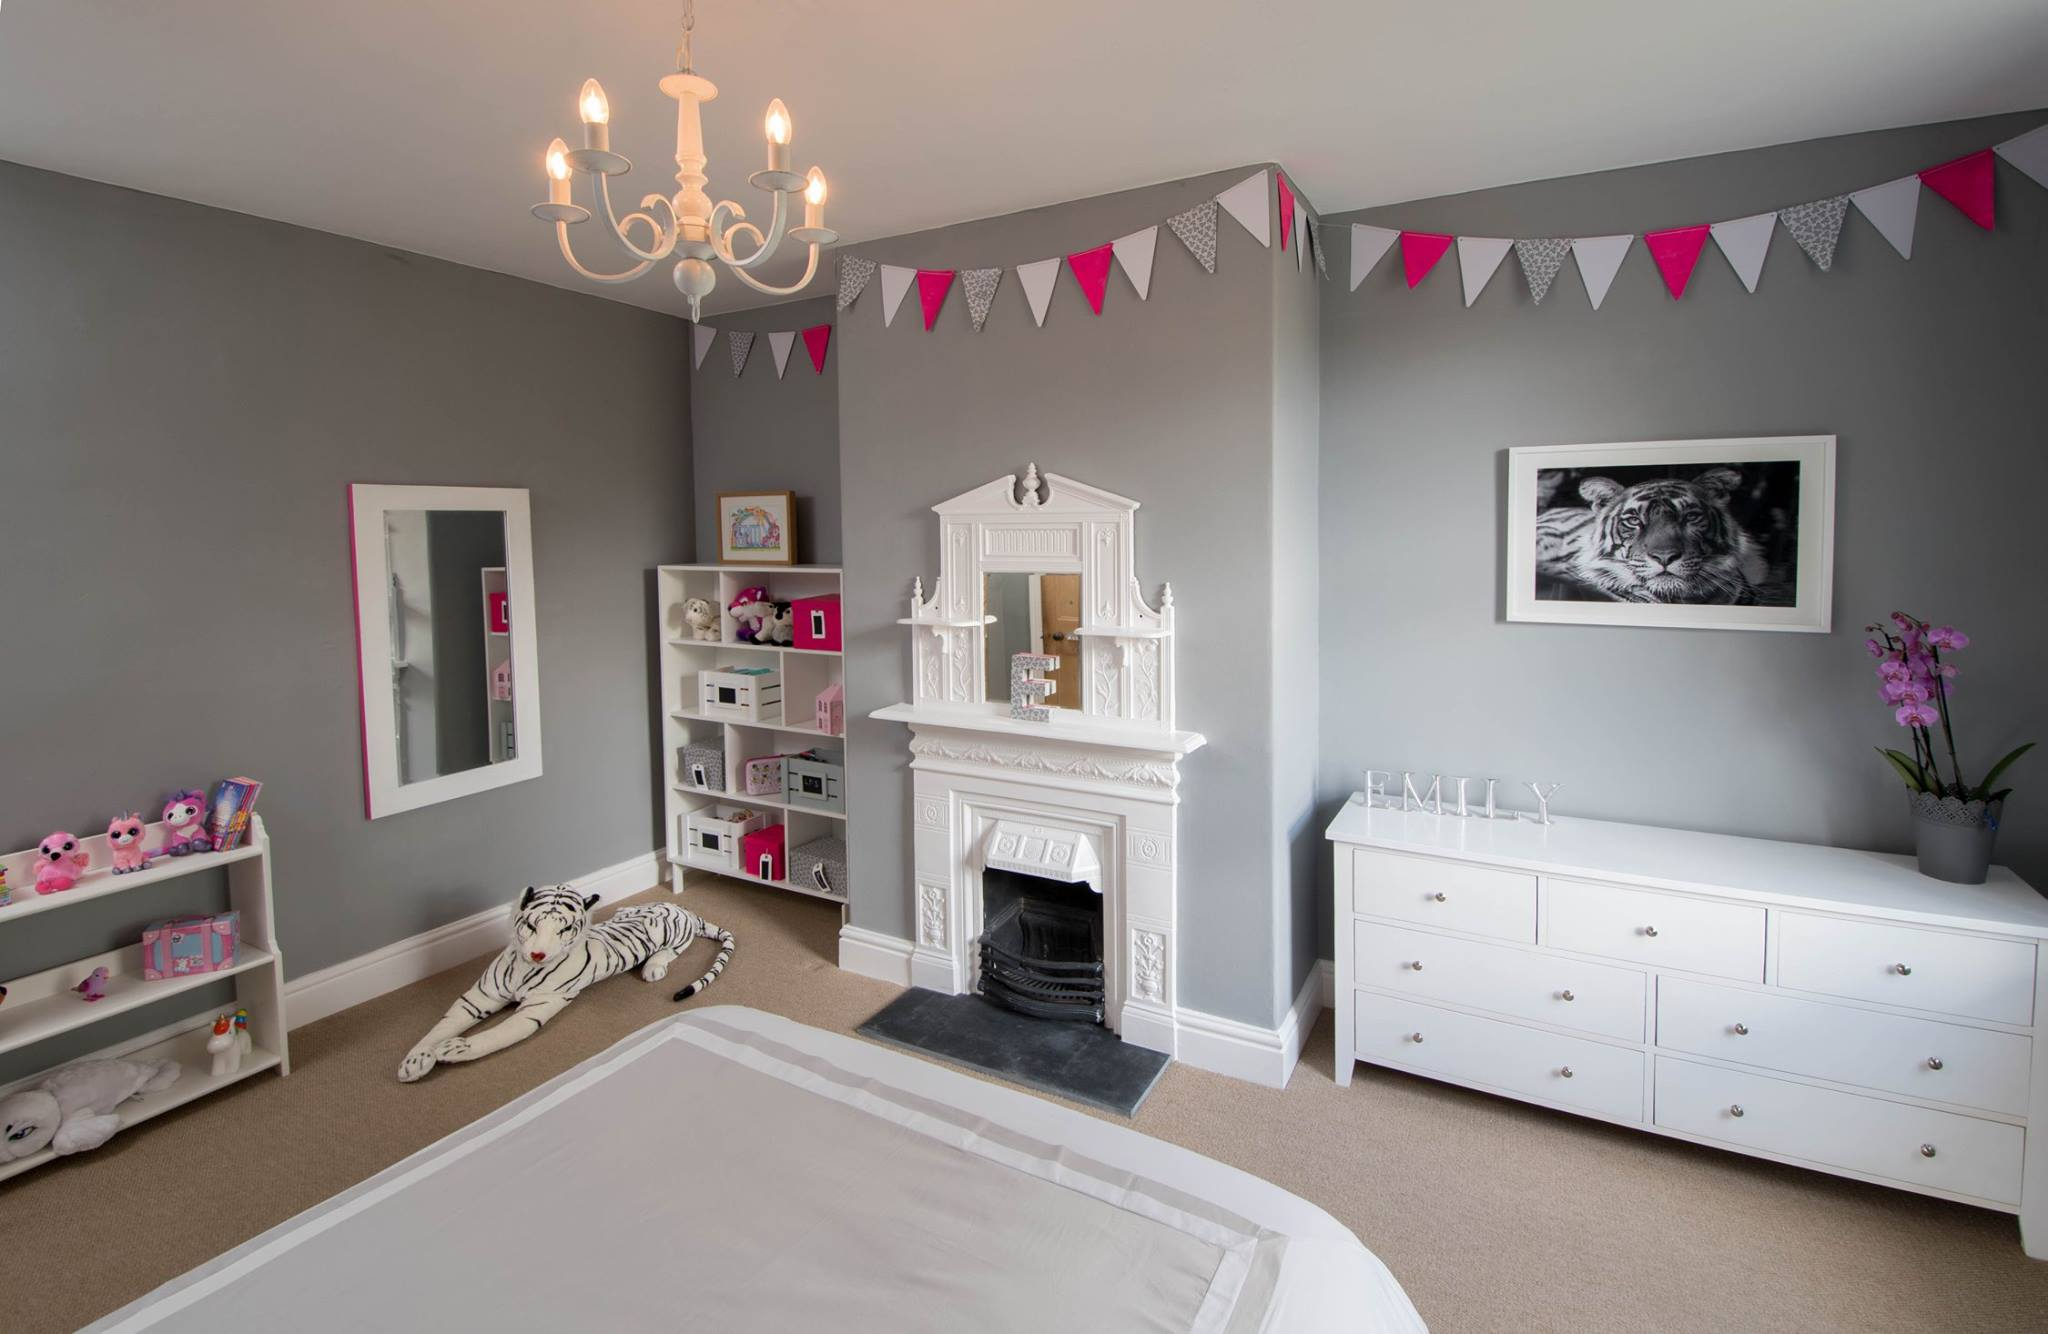 Soothing grey walls are the perfect backdrop for this little girl's bedroom